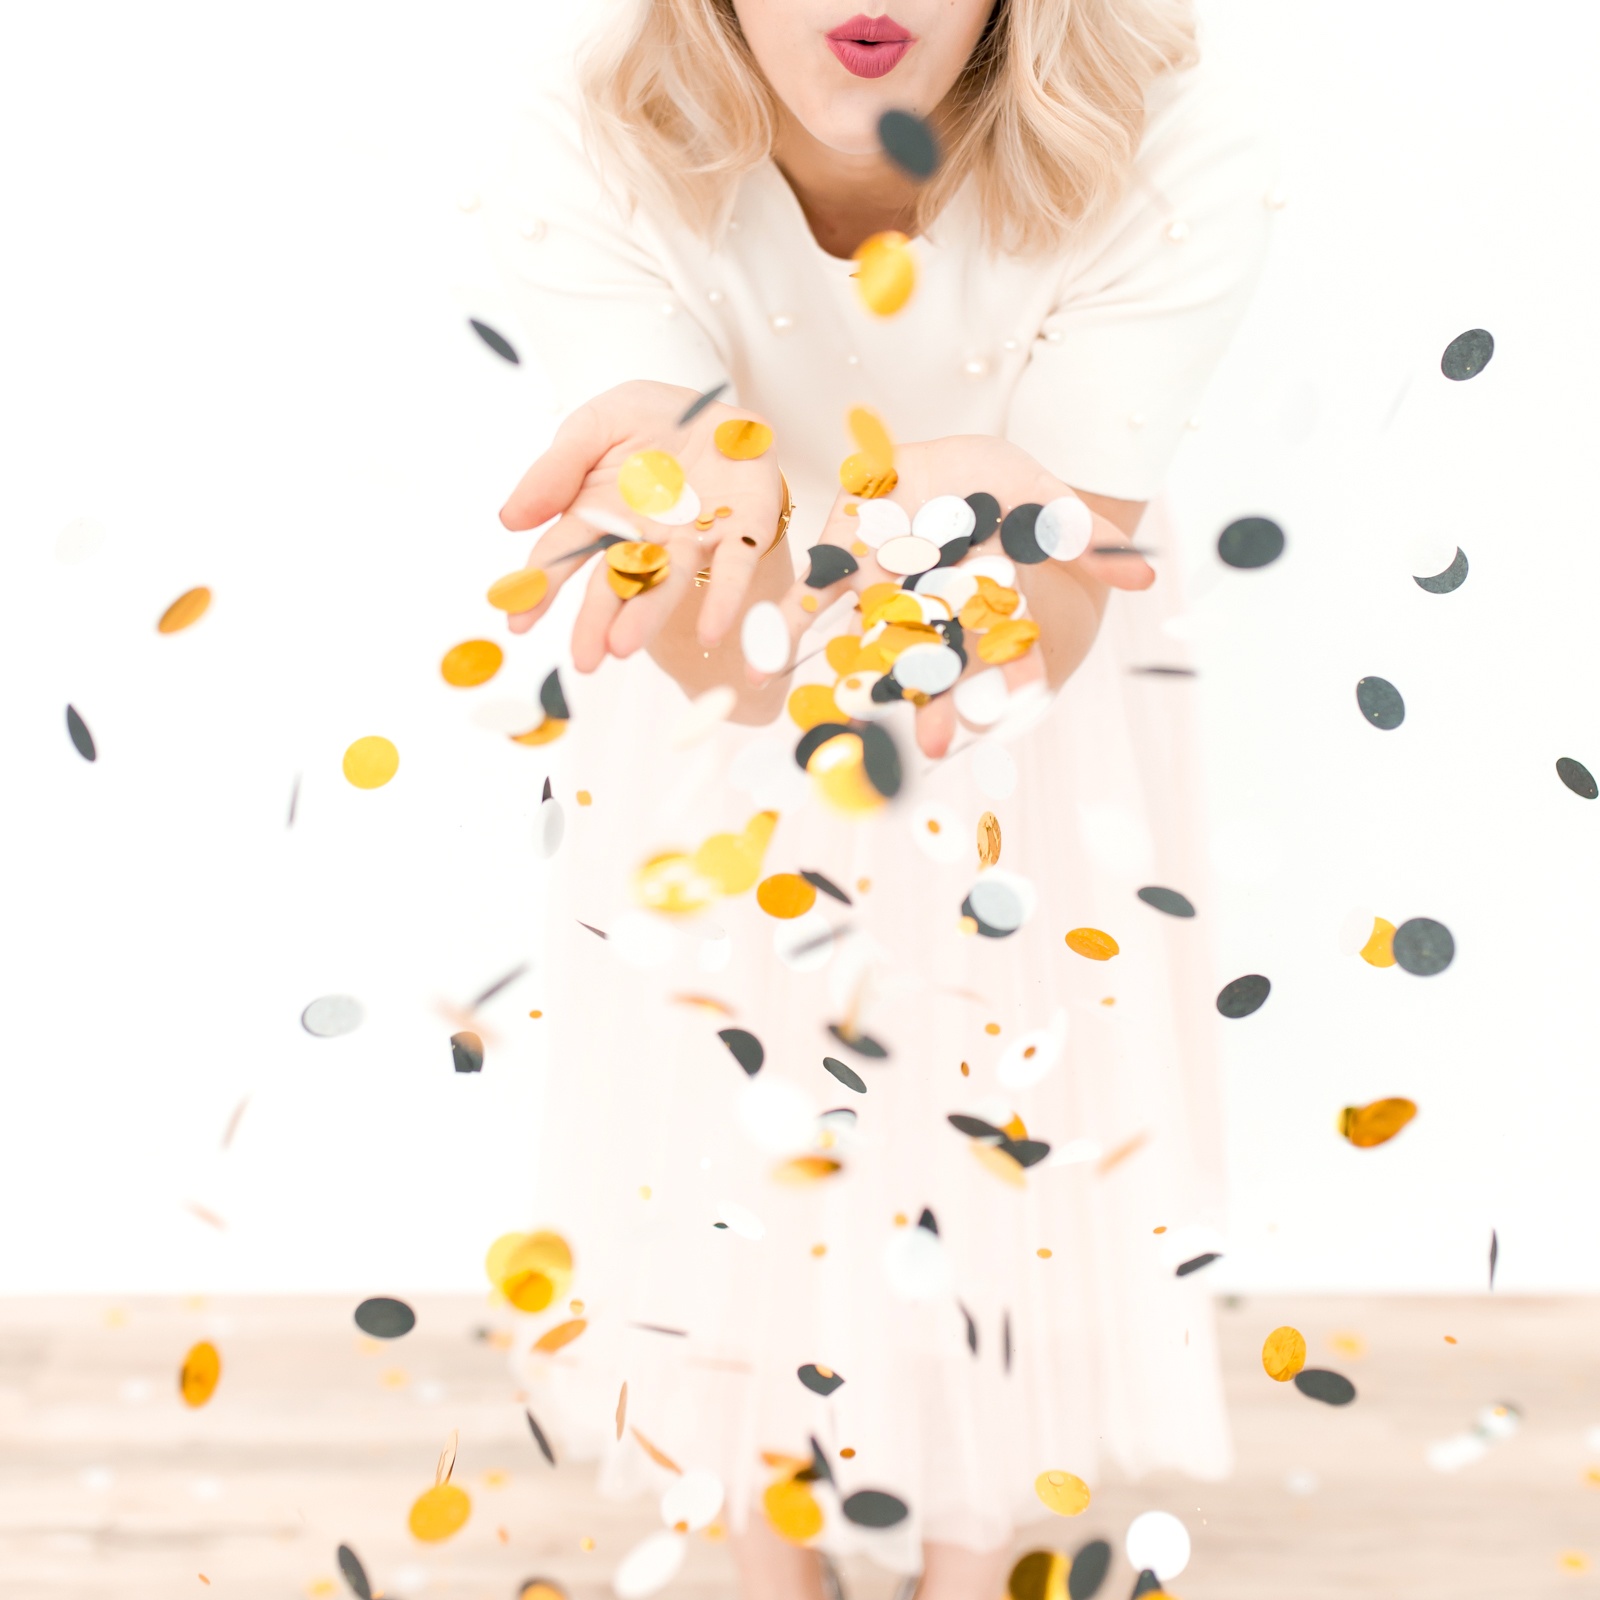 girl blowing confetti from her palms   3 alternatives to new year's resolutions